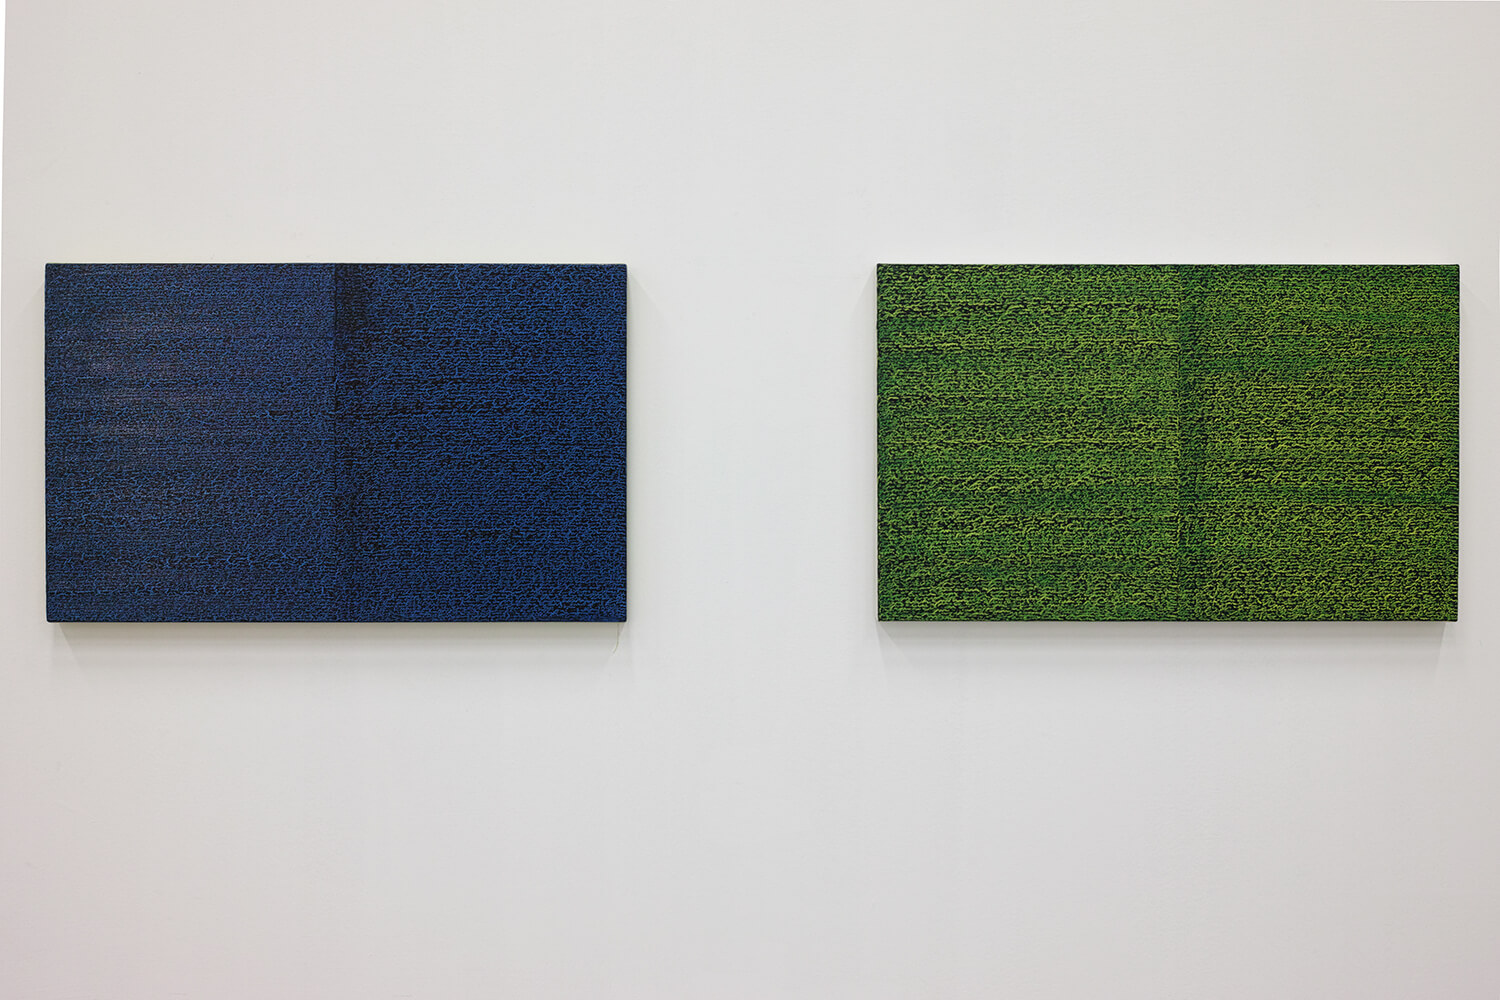 'Open Book blue-blue dark'  (left) & 'Open Book  yellow-green' (right)<br>Oil and Amber on canvas over panel, 37 x 60 cm, 2008 each